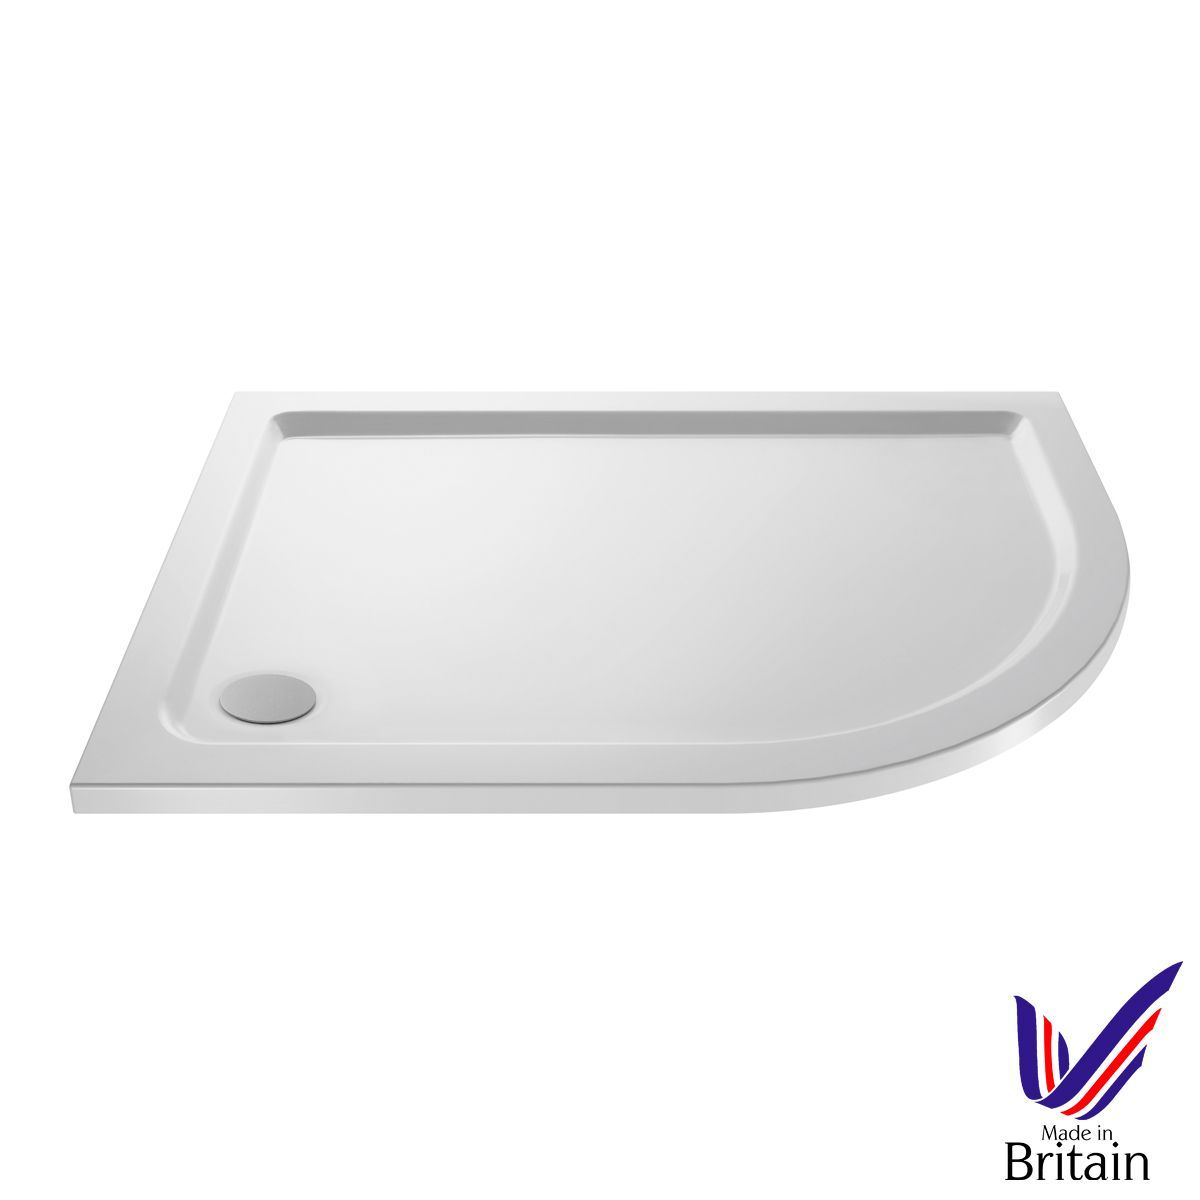 1200 x 800 Shower Tray Offset Quadrant Low Profile Right Hand by Pearlstone